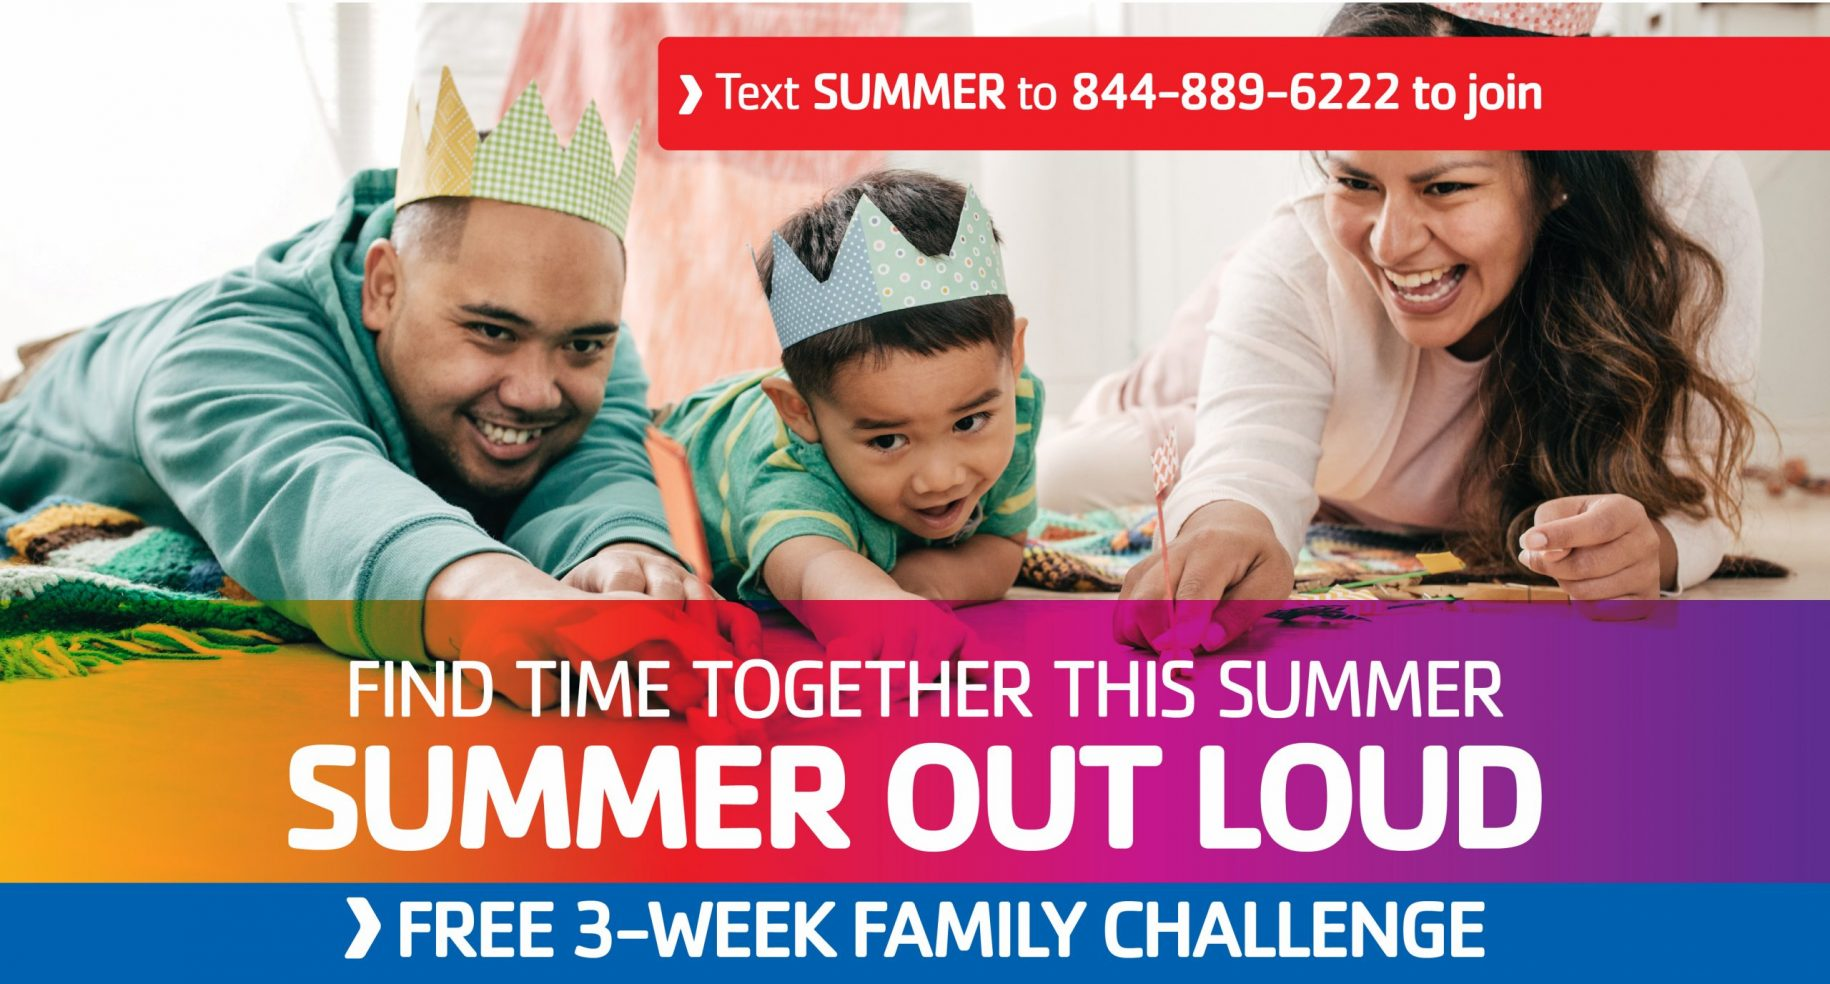 Summer Out Loud At the YMCA